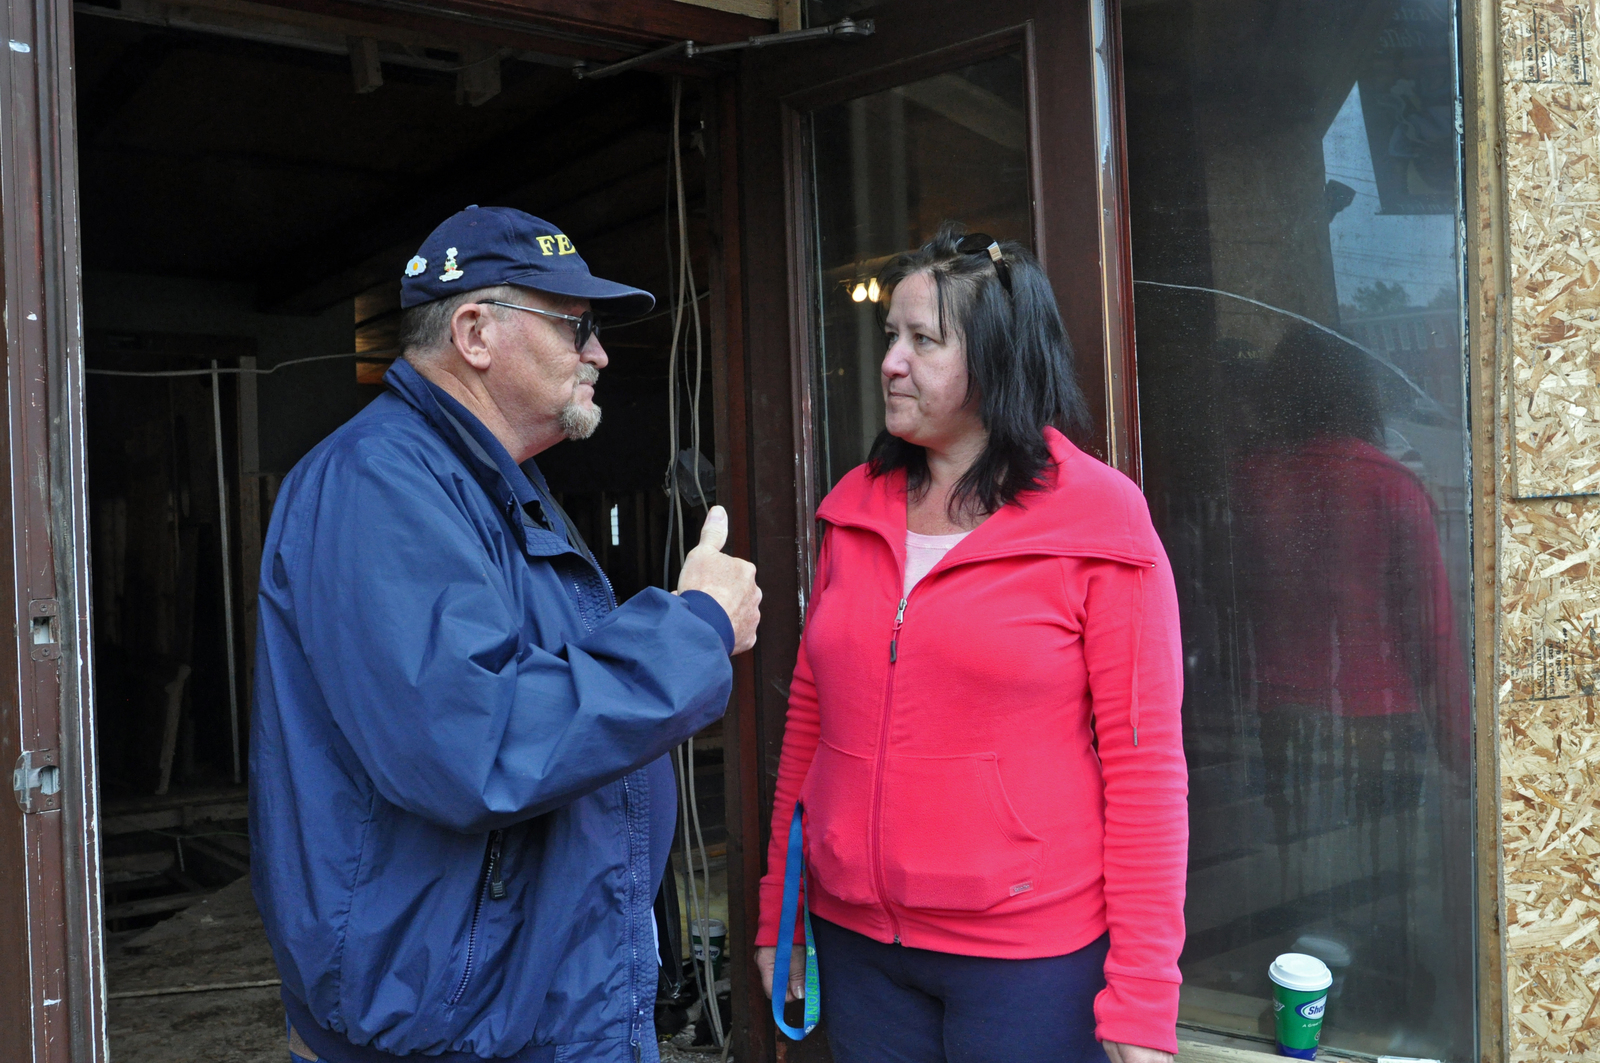 Flooding ^ Hurricane/Tropical Storm ^ Severe Storm - Wilmington, Vt. , September 20, 2011 -- FEMA's Danny Baker talks with Maple Leaf Malt Brewery Company owner, Margaret Ziolkowski, about the damage tropical storm Irene caused to her business. Ms. Ziolkowski, like other Wilmington businesses, are working hard to be open for fall foliage visitors. The town and businesses of Wilmington were badly damaged by flooding in the downtown area. Photo by Wendell A. Davis Jr.